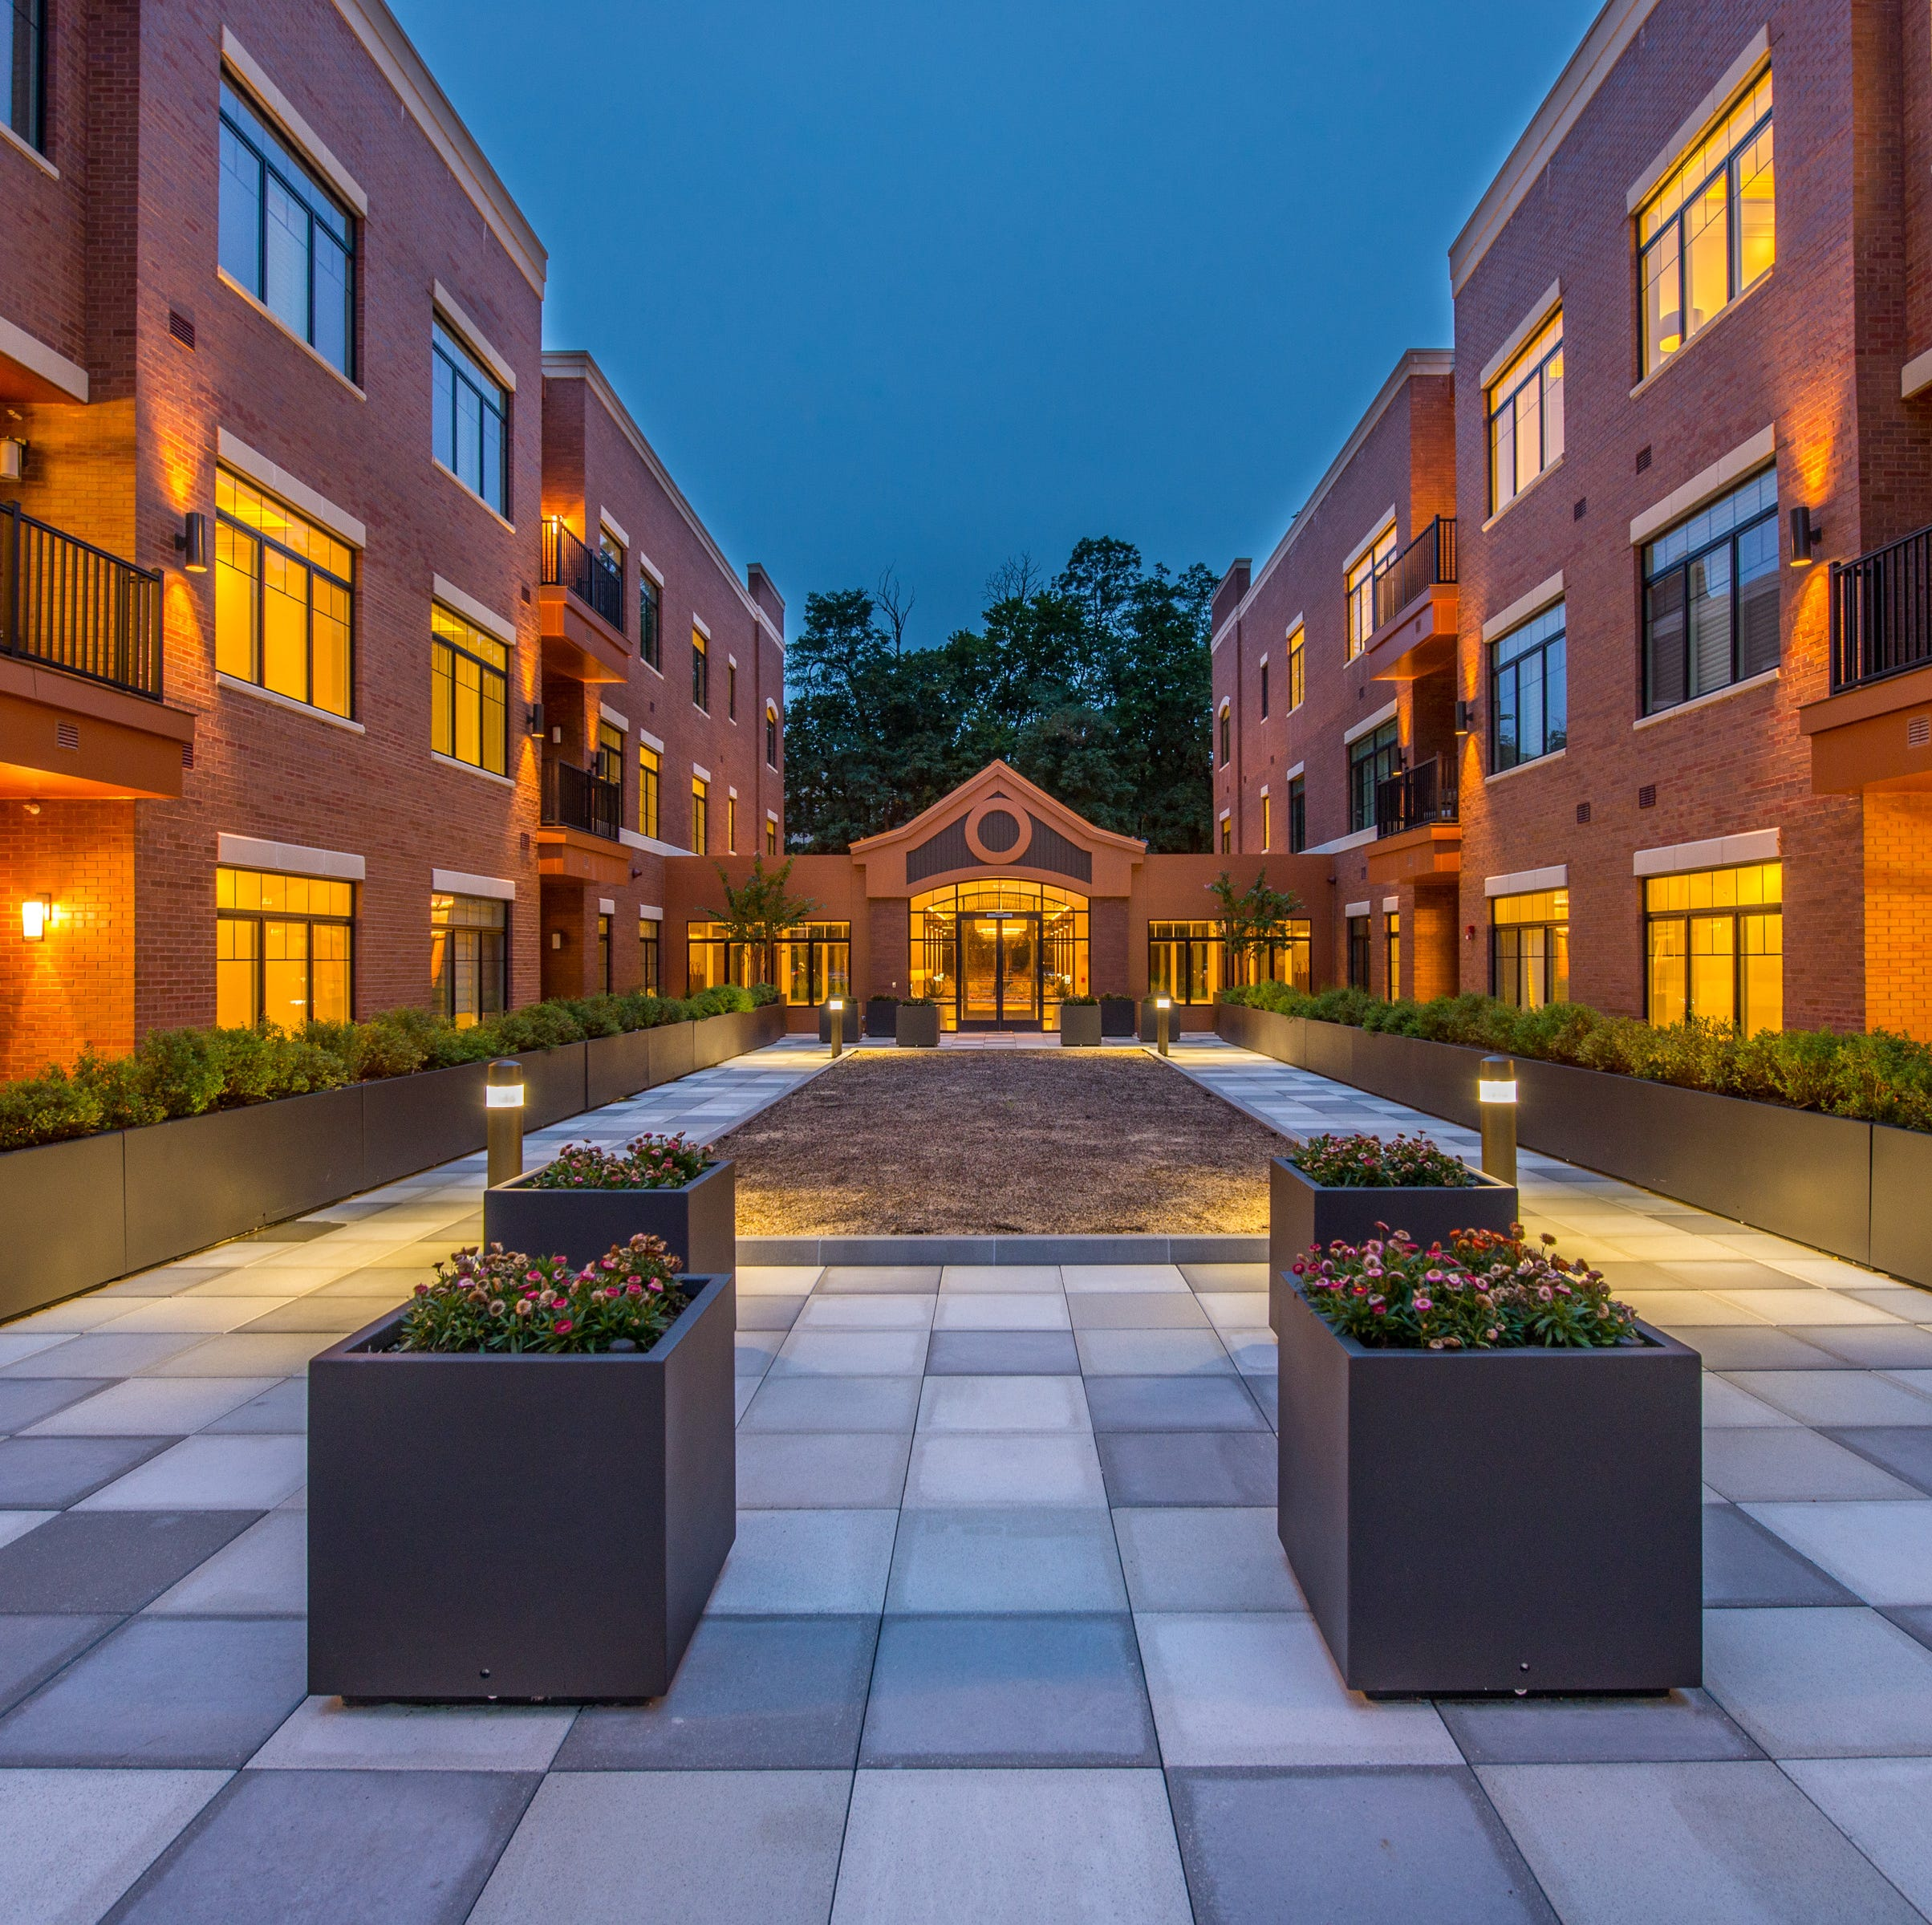 NJ natives finds ideal home at Madison Place